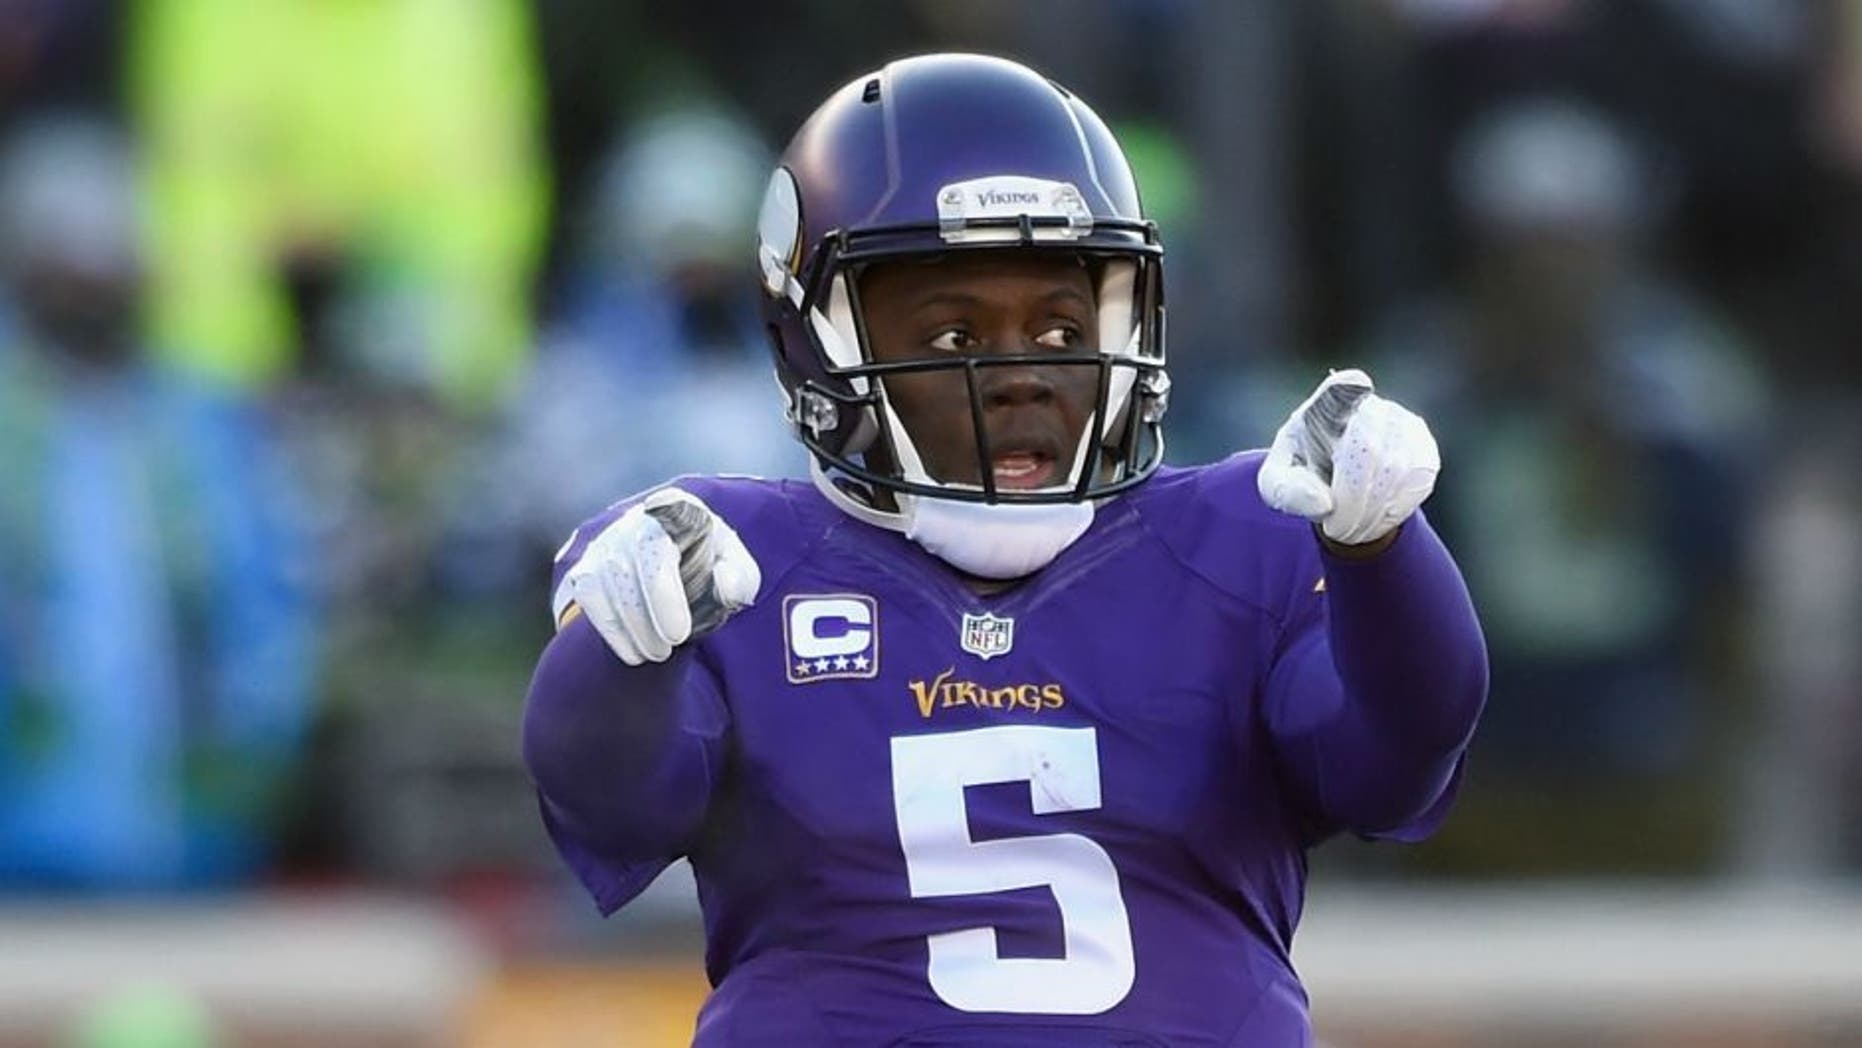 MINNEAPOLIS, MN - JANUARY 10: Teddy Bridgewater #5 of the Minnesota Vikings communicates at the line of scrimmage in the second half against the Seattle Seahawks during the NFC Wild Card Playoff game at TCFBank Stadium on January 10, 2016 in Minneapolis, Minnesota. (Photo by Hannah Foslien/Getty Images)